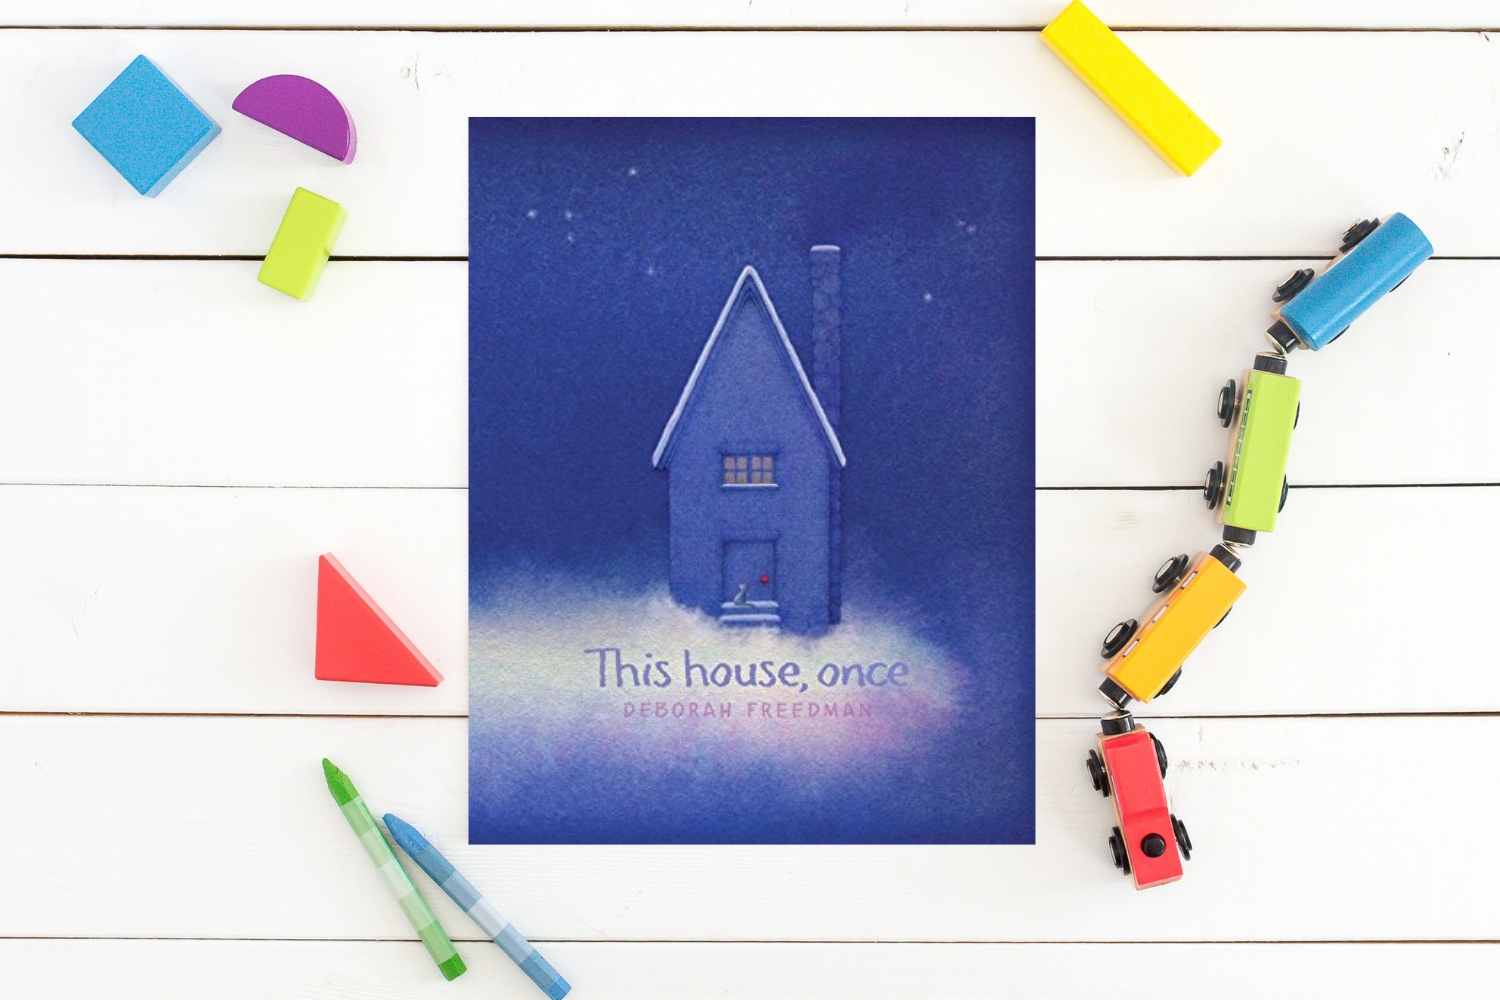 This house, once - Books from Past Boxes of Tiny Humans Read